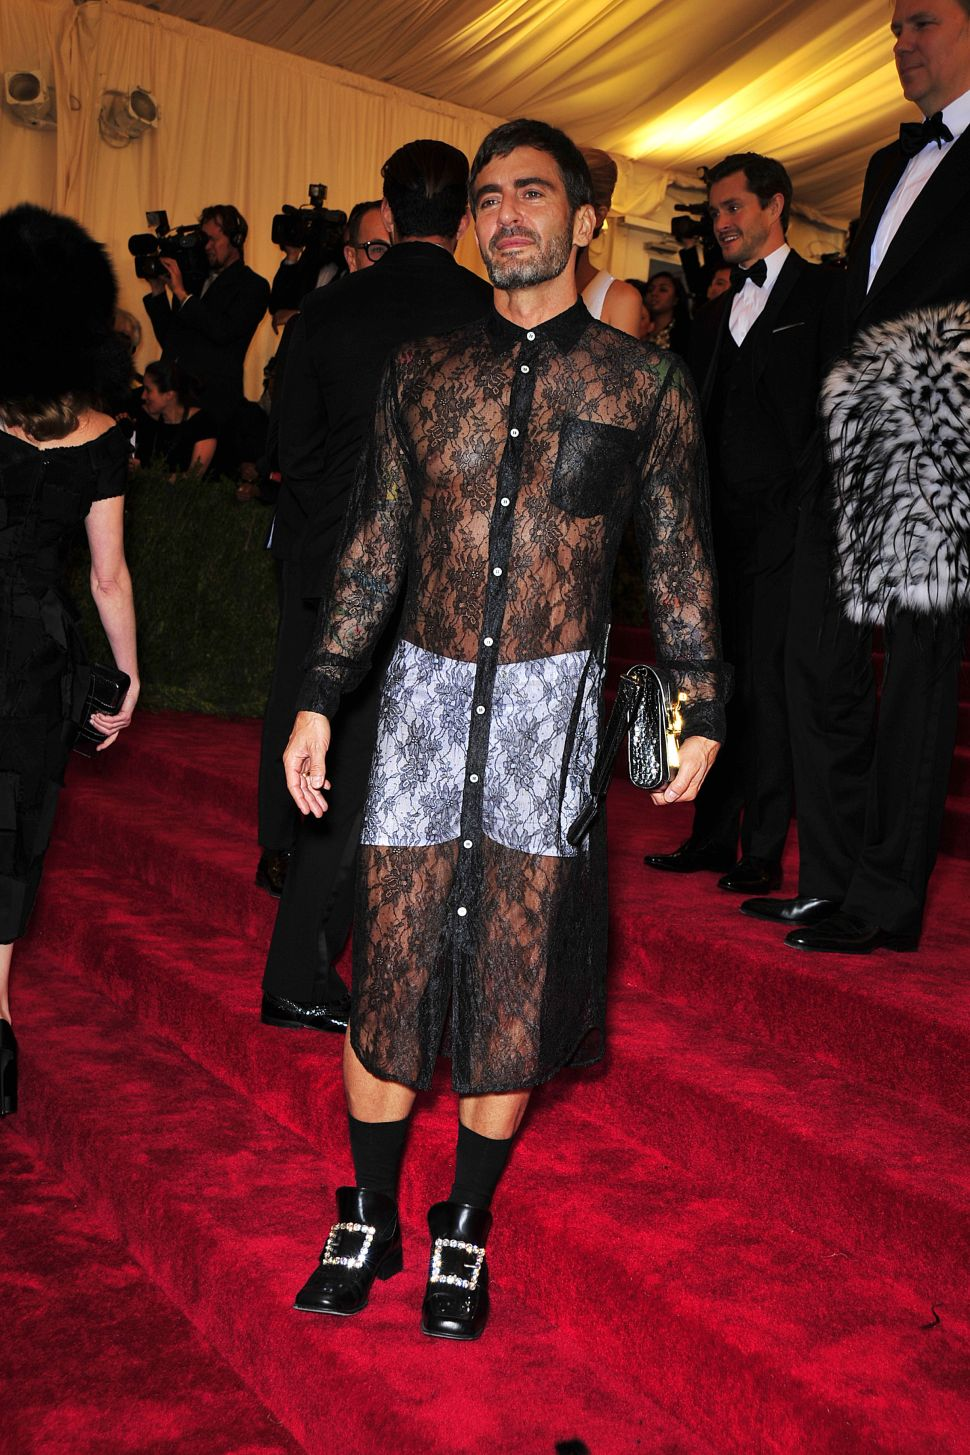 Night at the Museum: Notes from the Red Carpet at the Met Costume Institute Gala